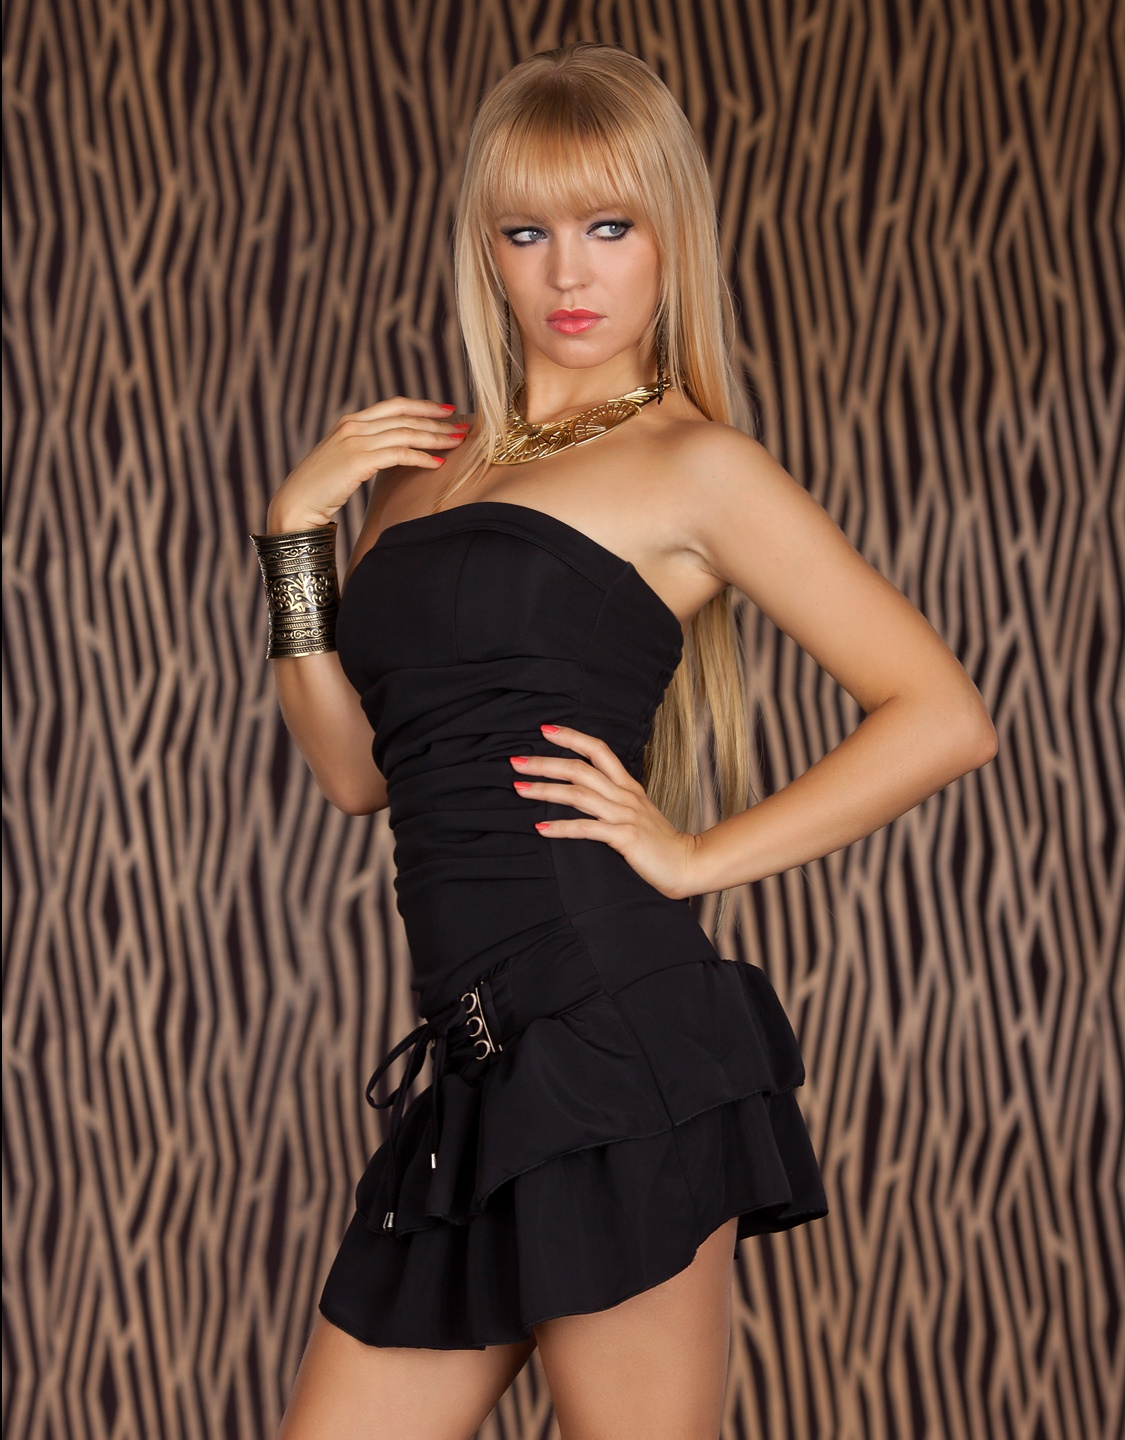 Black Strapless Lacing Dress With Flounces